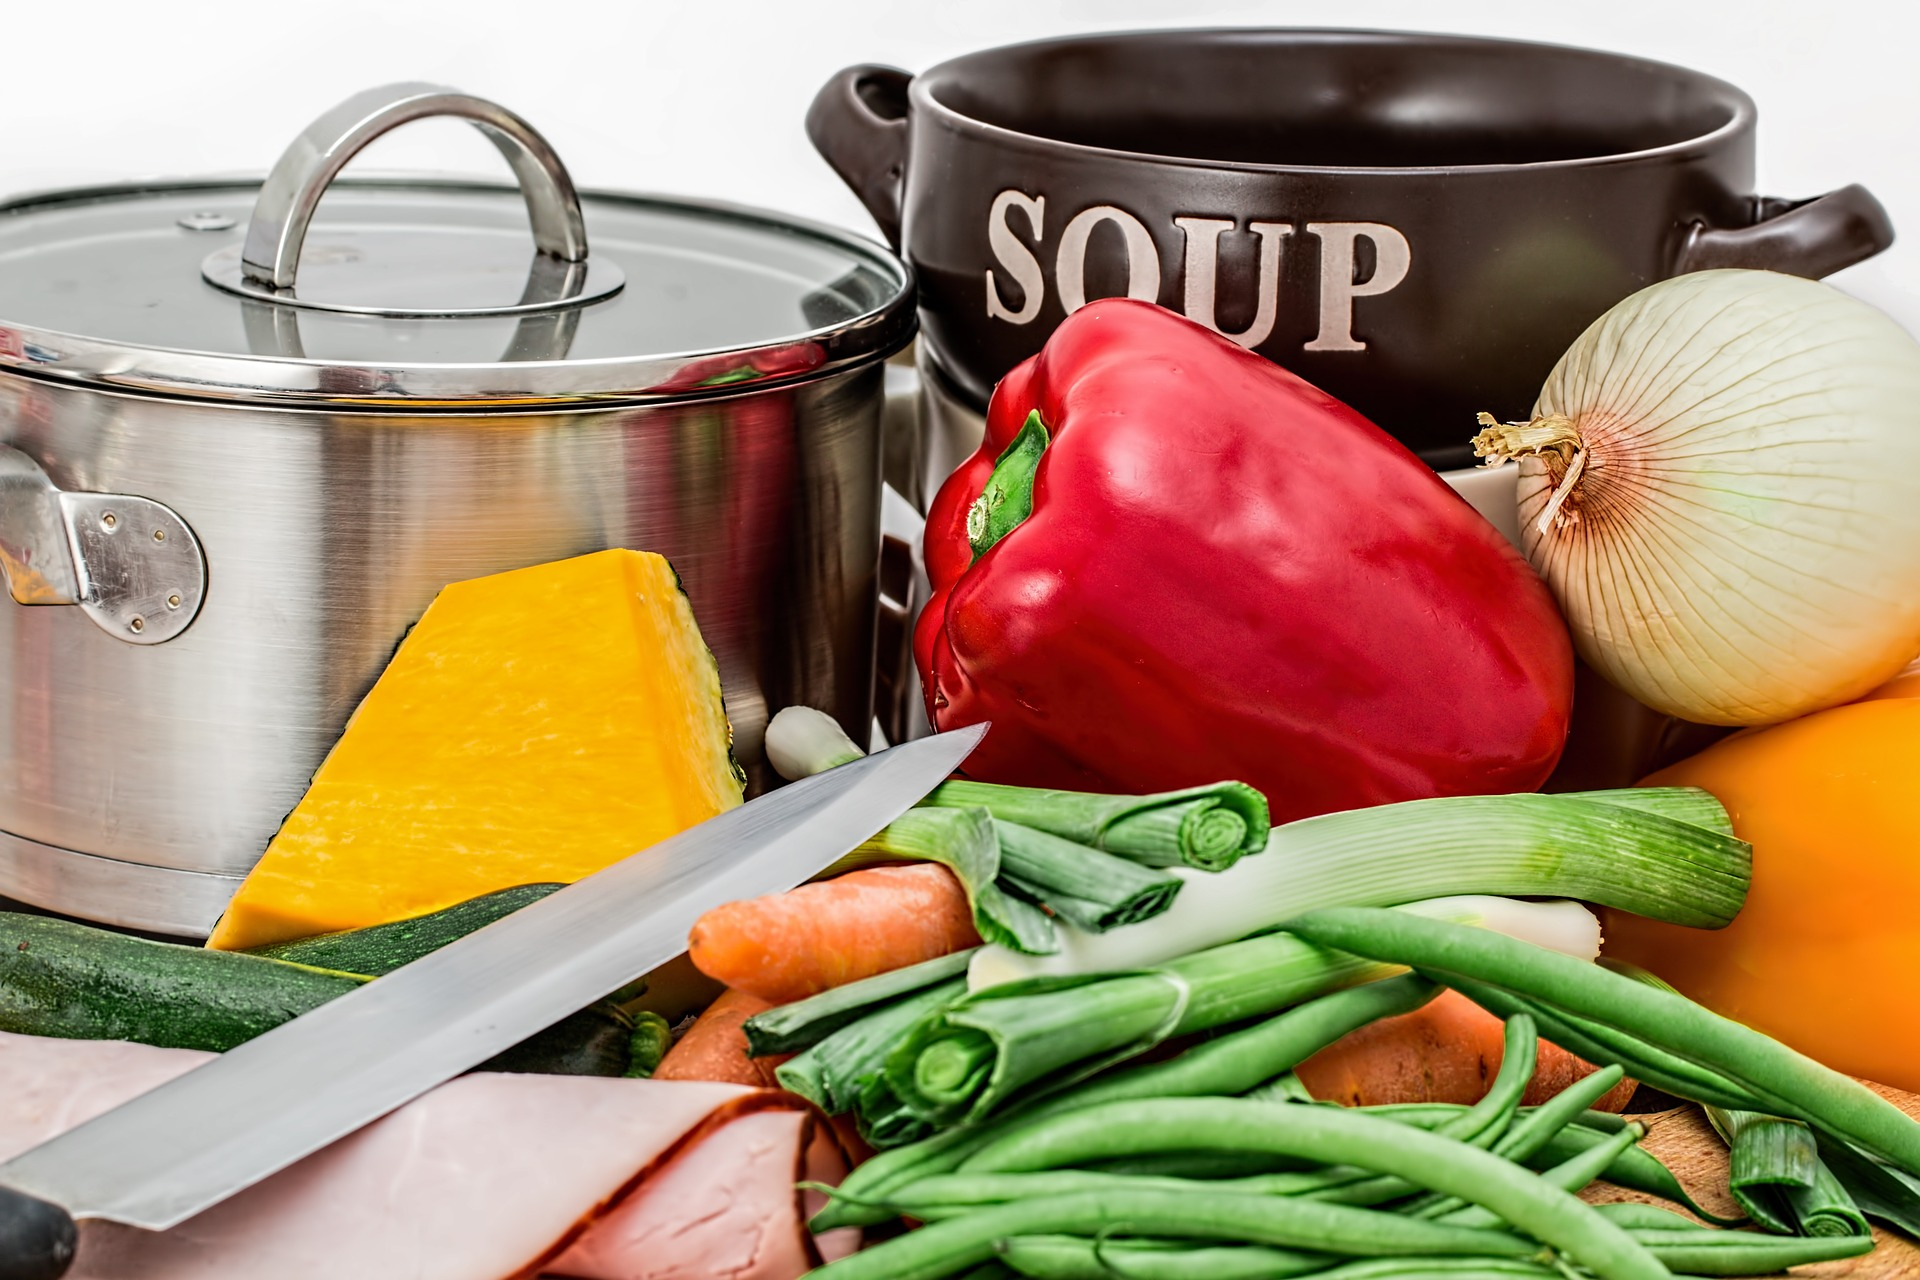 Don't waste food! Use leftovers and make them into hearty meals like soup or stews